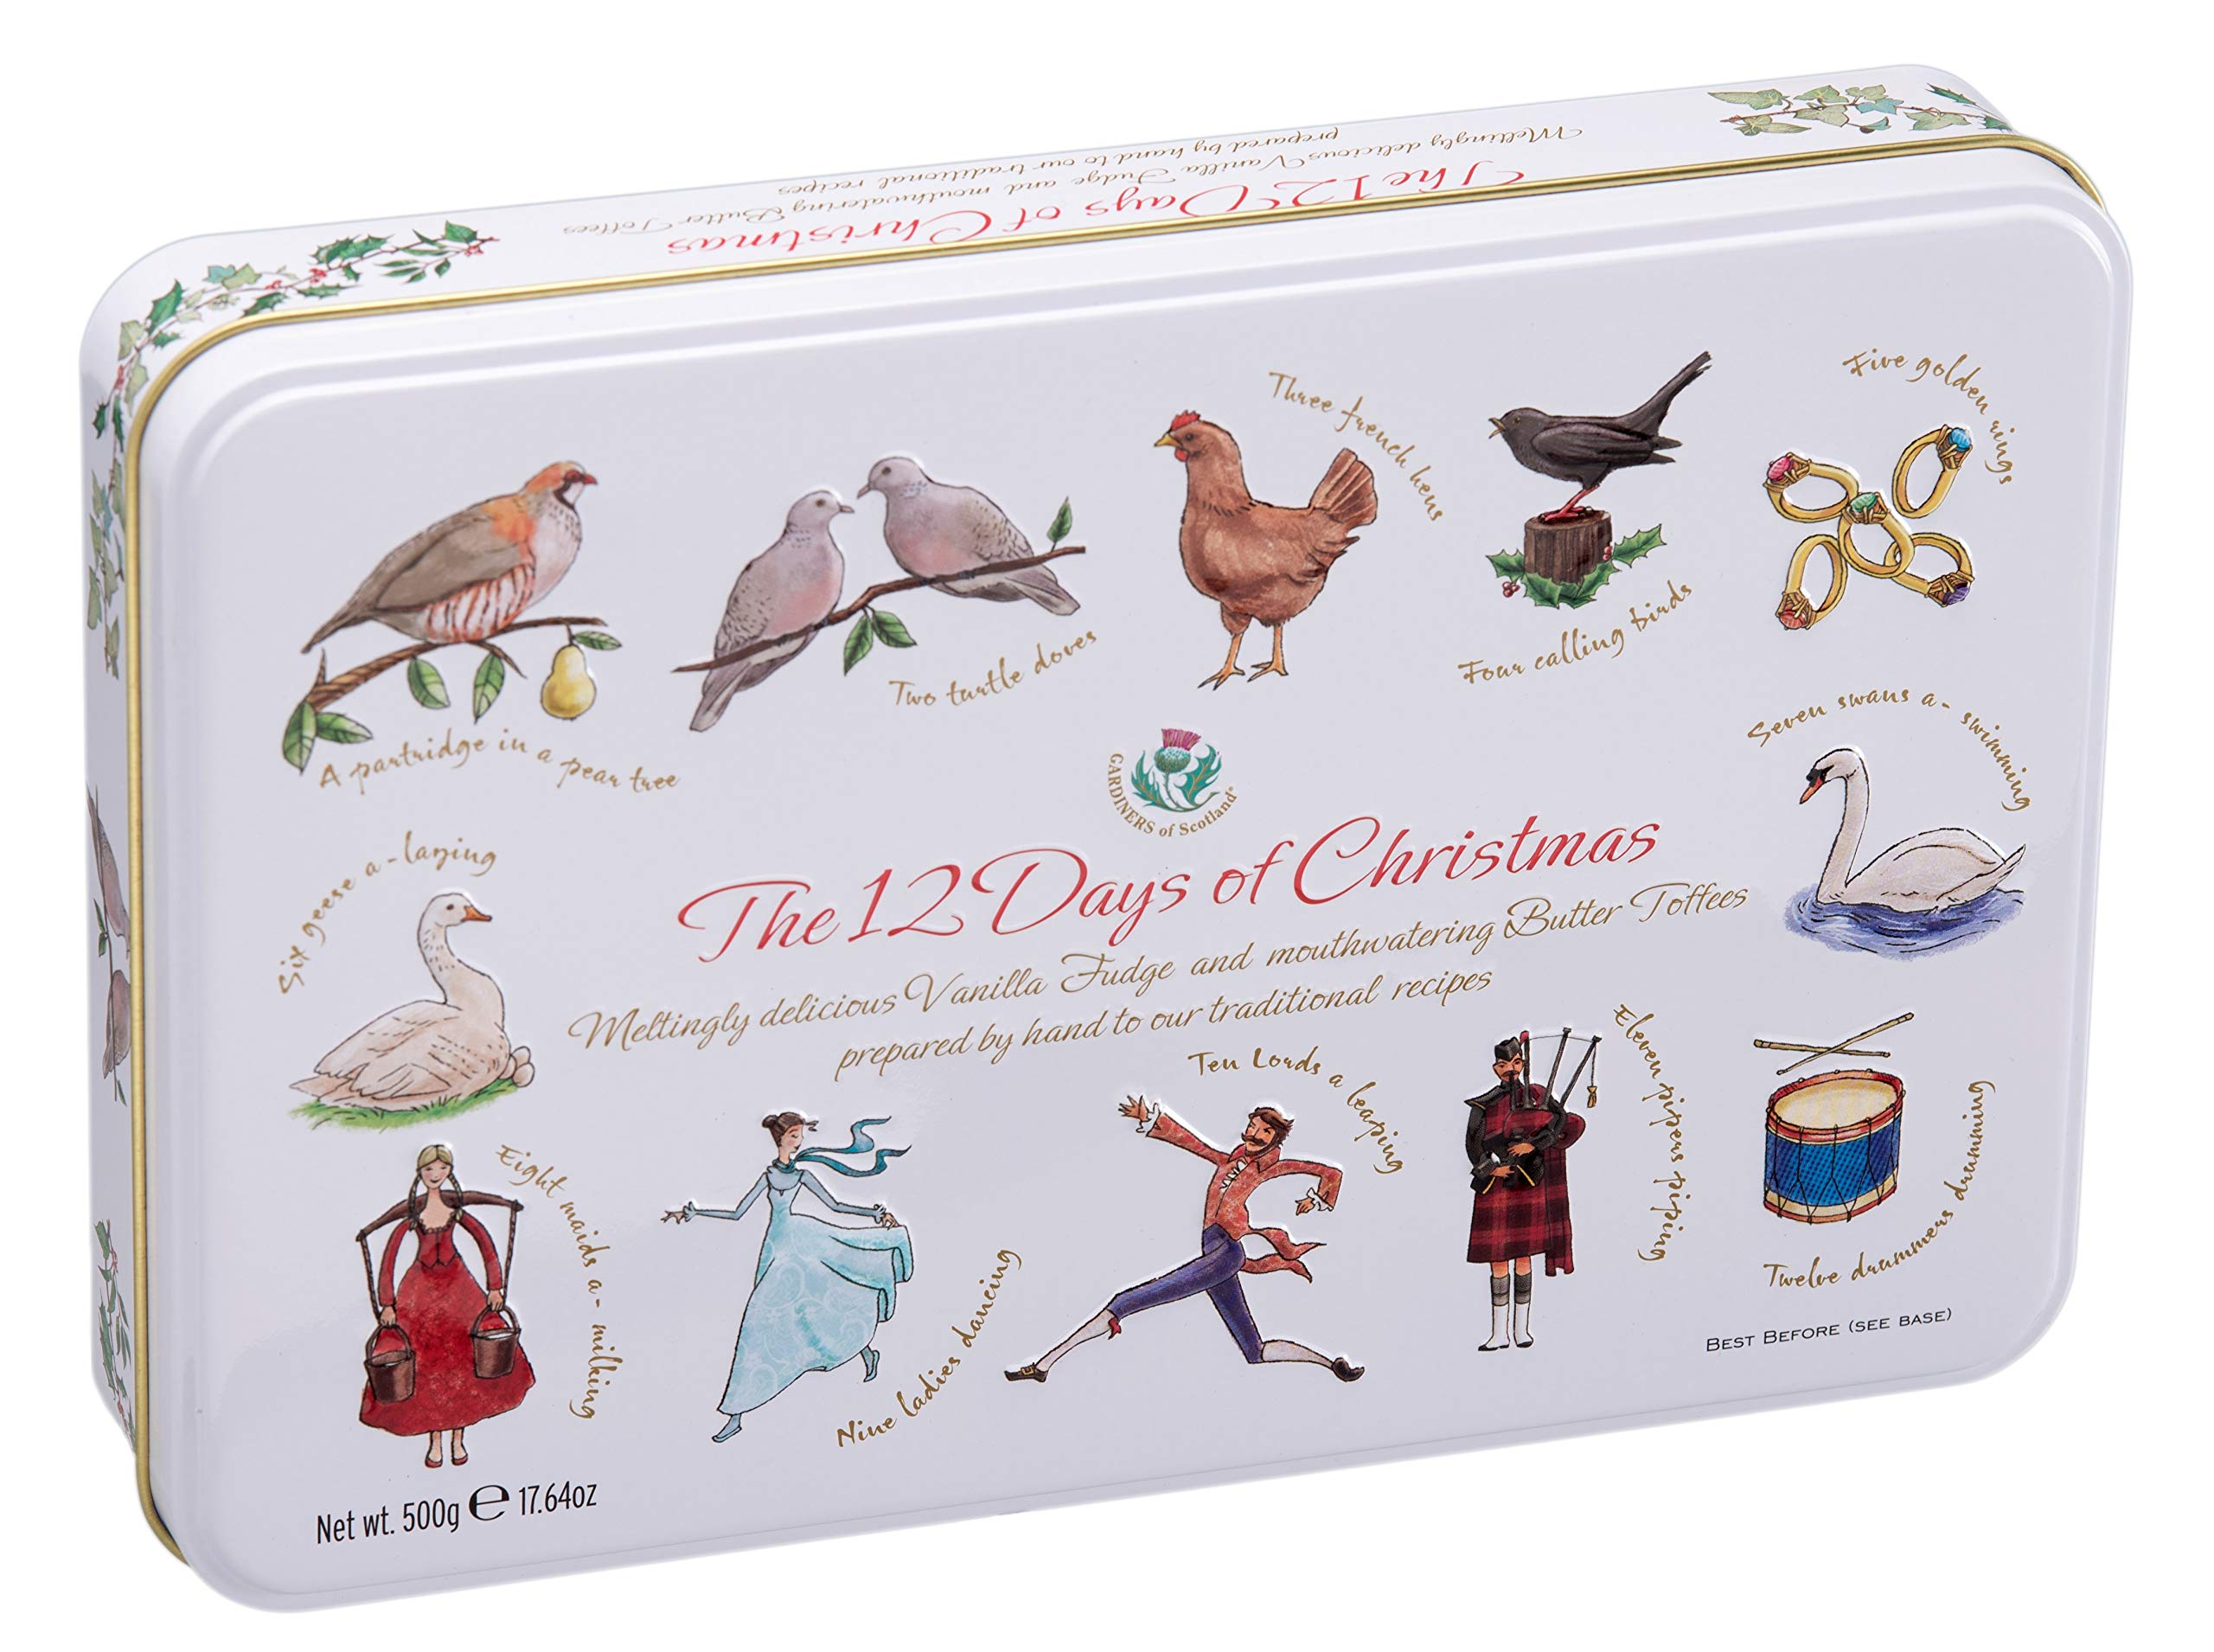 Gardiners of Scotland, ''The 12 Days of Christmas'' Handmade Vanilla Fudge & Butter Toffees in Large Christmas / Holiday Embossed Tin, 17.6 Oz by Gardiners of Scotland